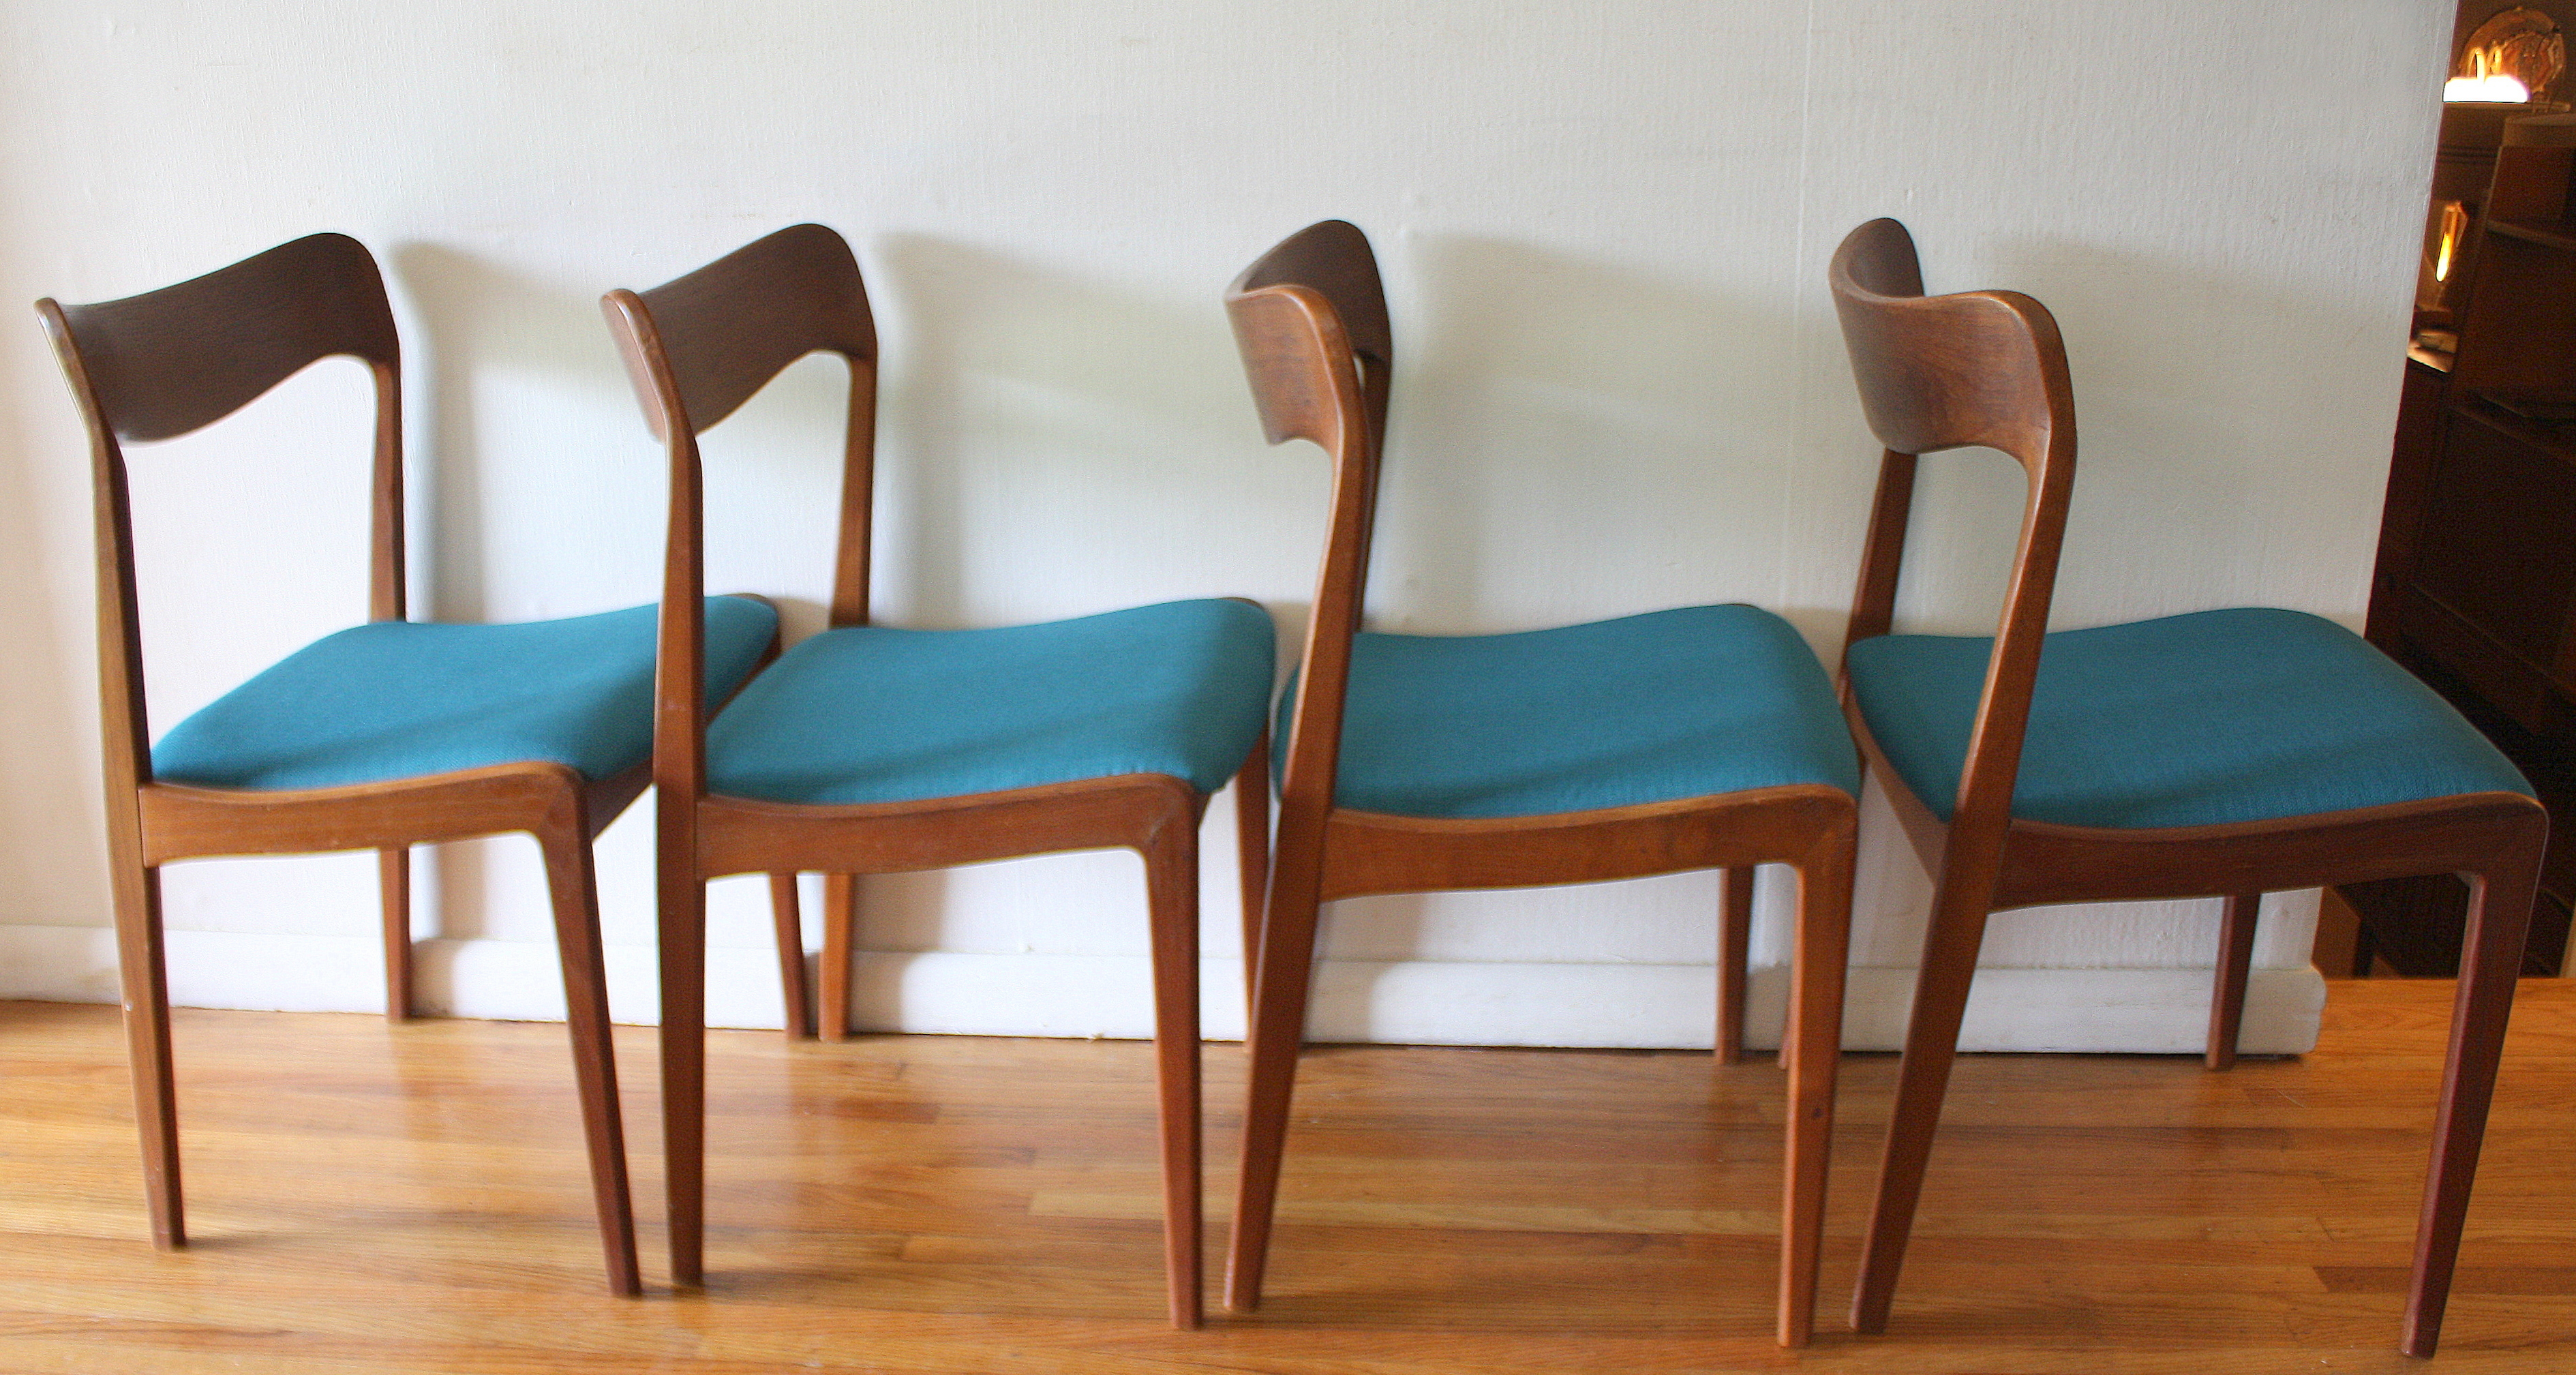 teak folding chairs and table mickey mouse recliner chair mid century modern danish dining